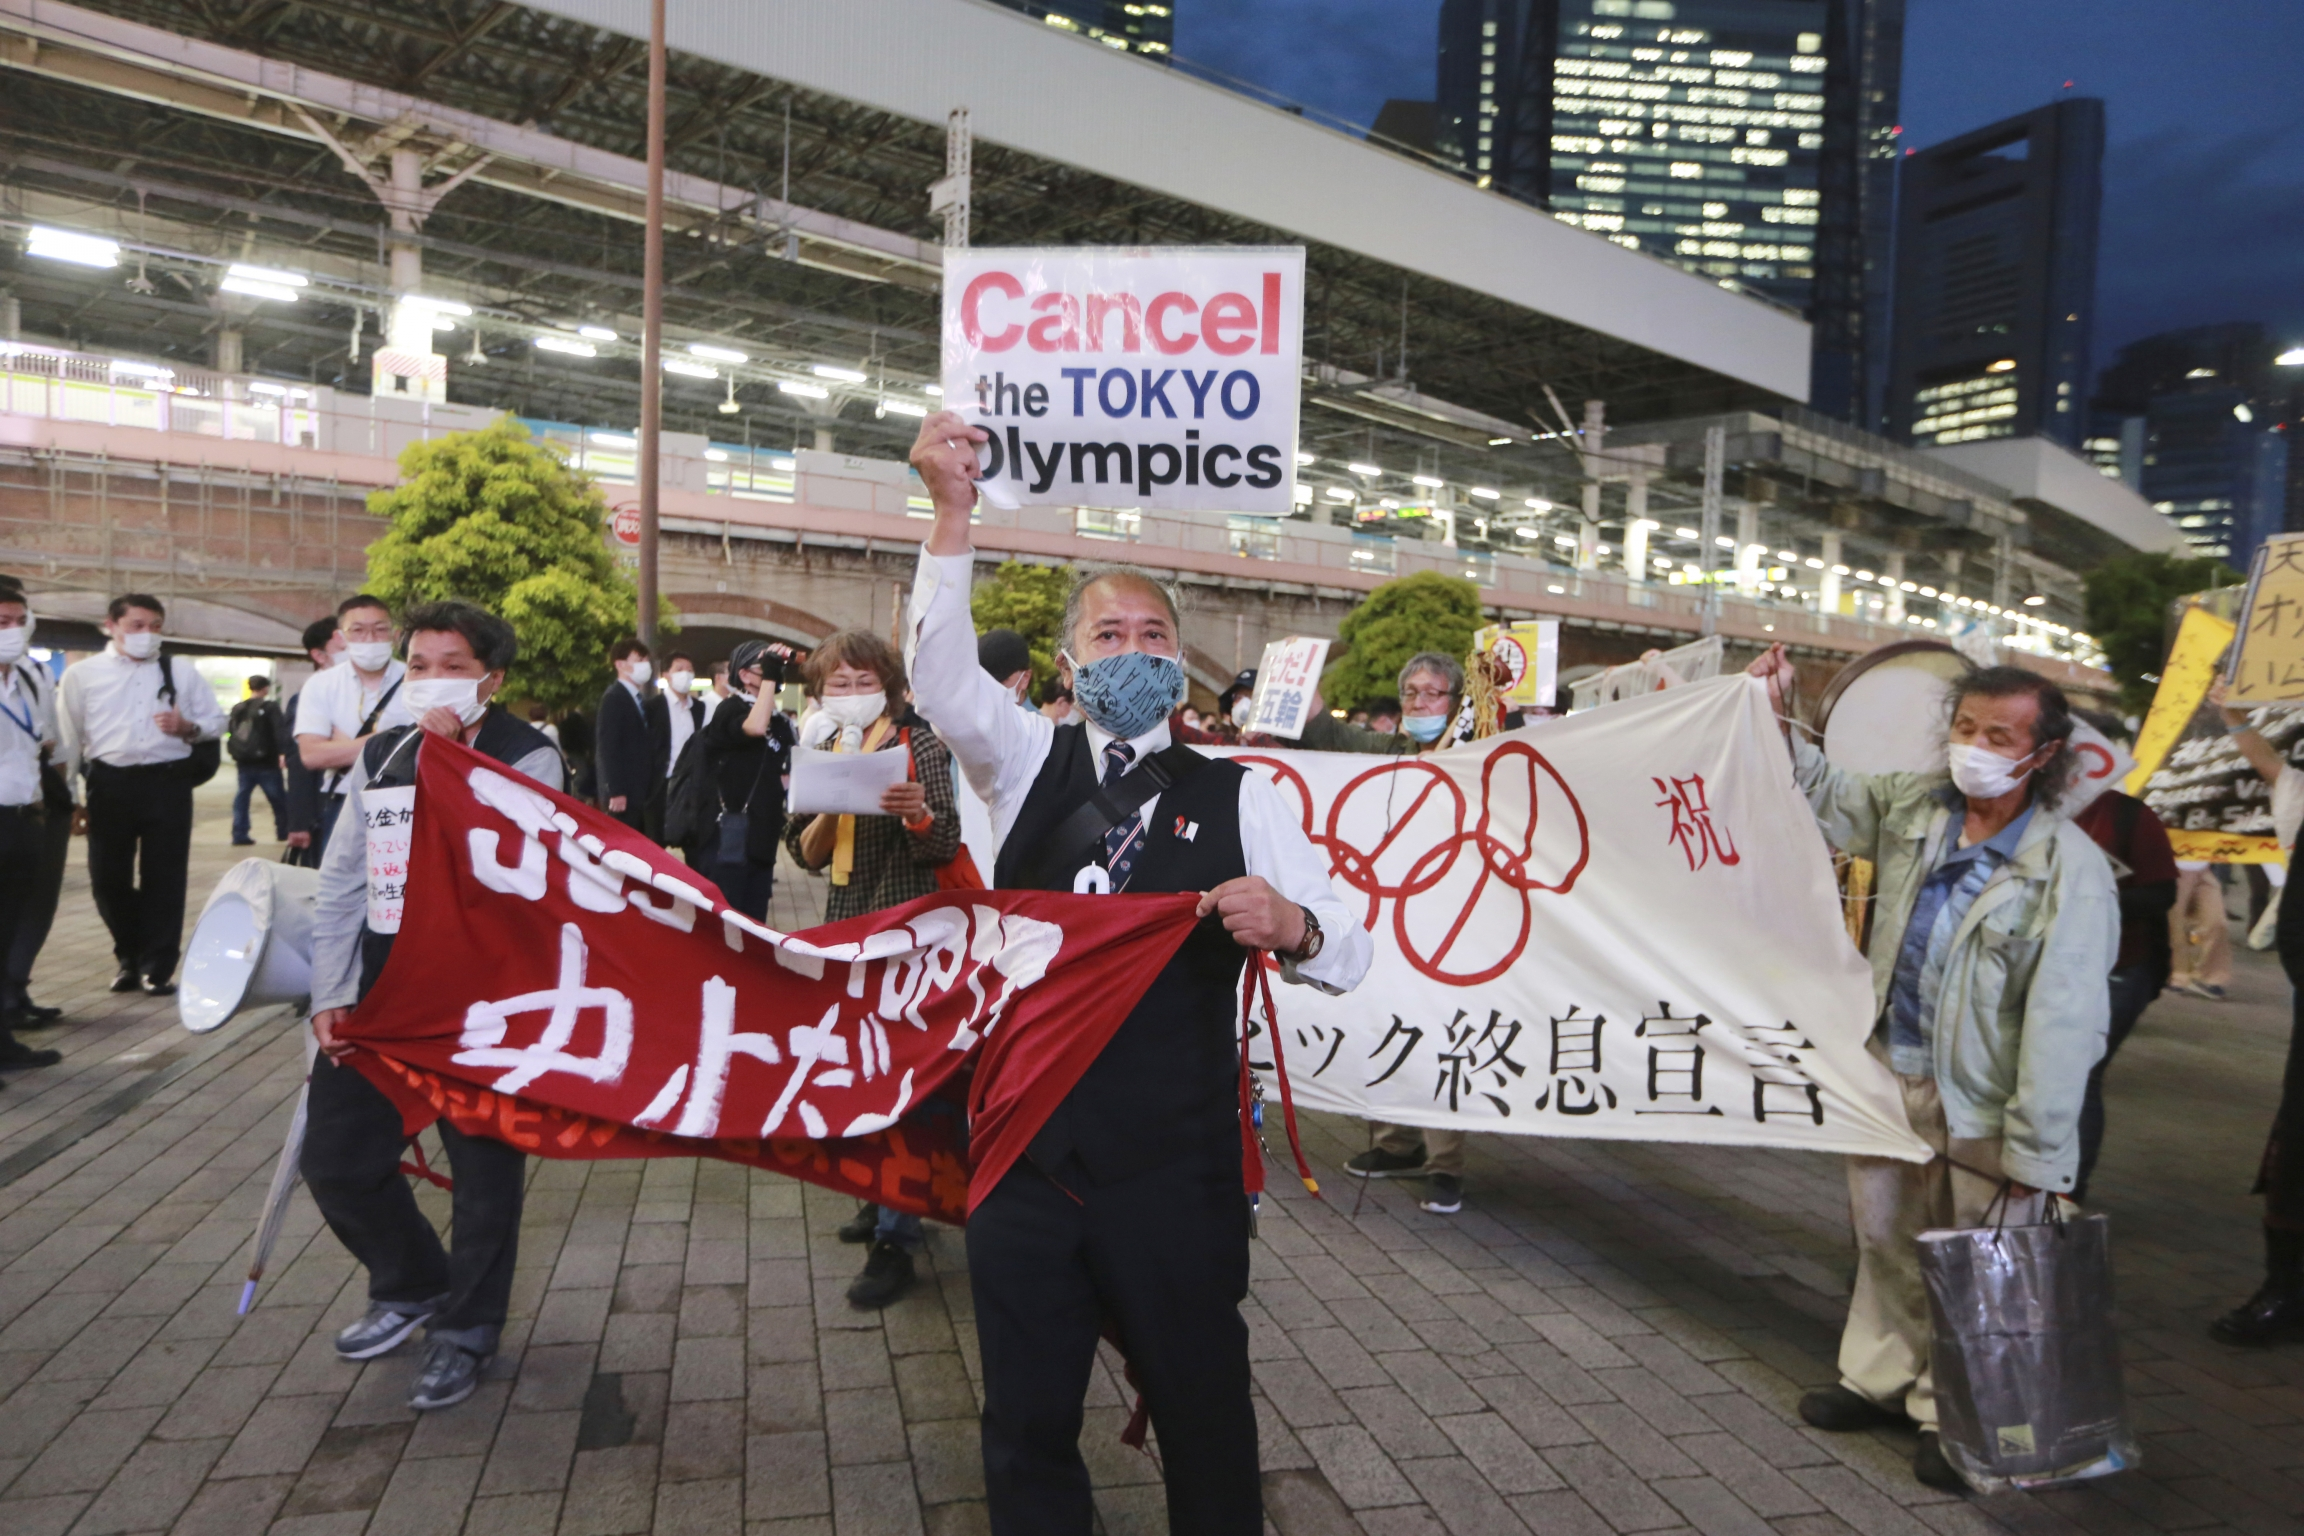 In this May 17, 2021, demonstrators protest against the Tokyo 2020 Olympics in Tokyo. The IOC and Tokyo Olympic organizersrun into some of the strongest medical-community opposition so far with the games set to open in just over eight weeks.